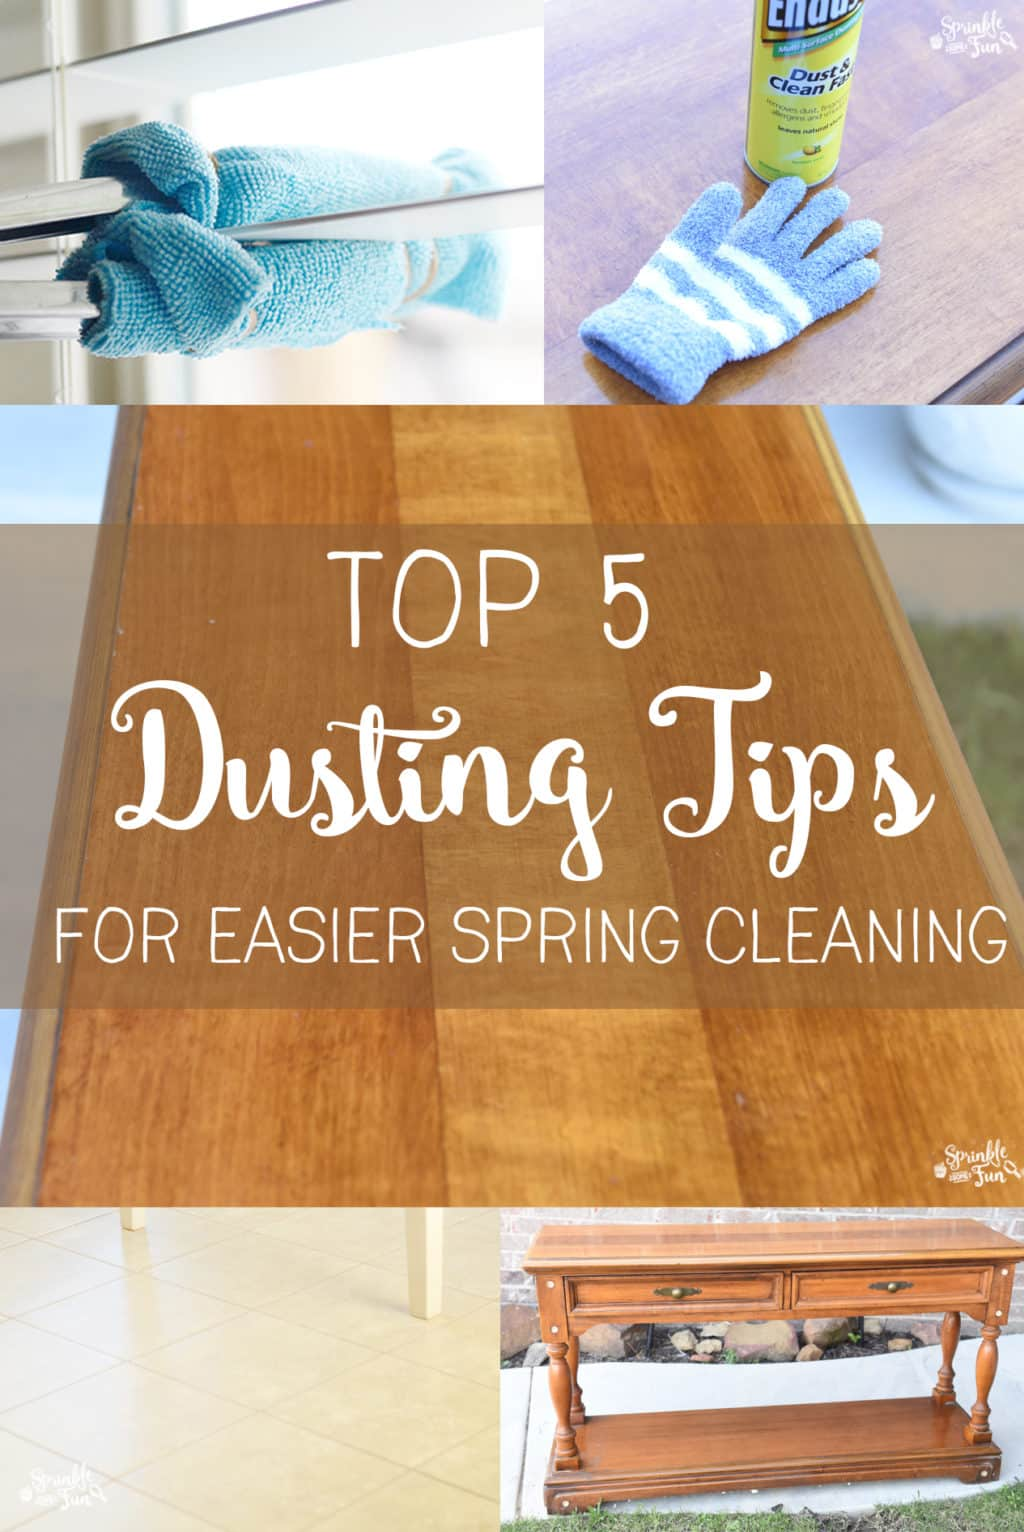 Top 5 Dusting Tips for Easier Spring Cleaning!